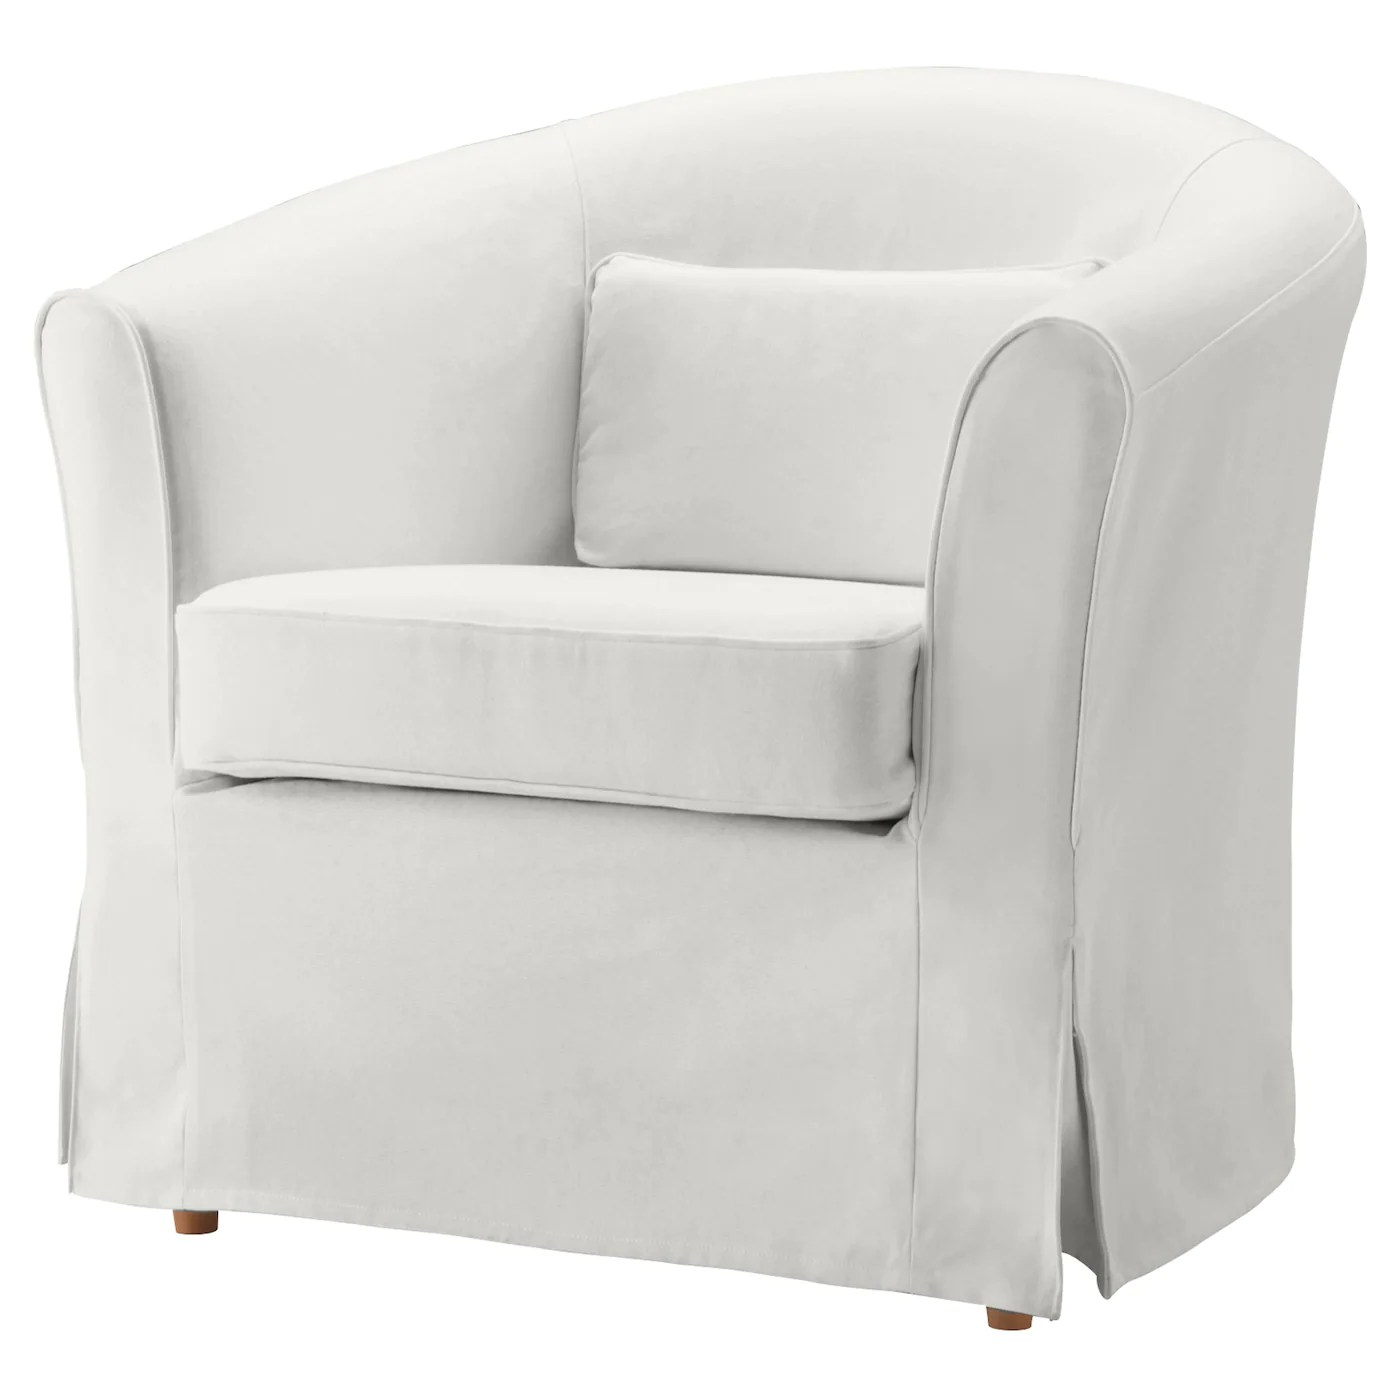 white armchair cover bedroom chair ideas tullsta blekinge ikea the included cushion can be used for lumbar support